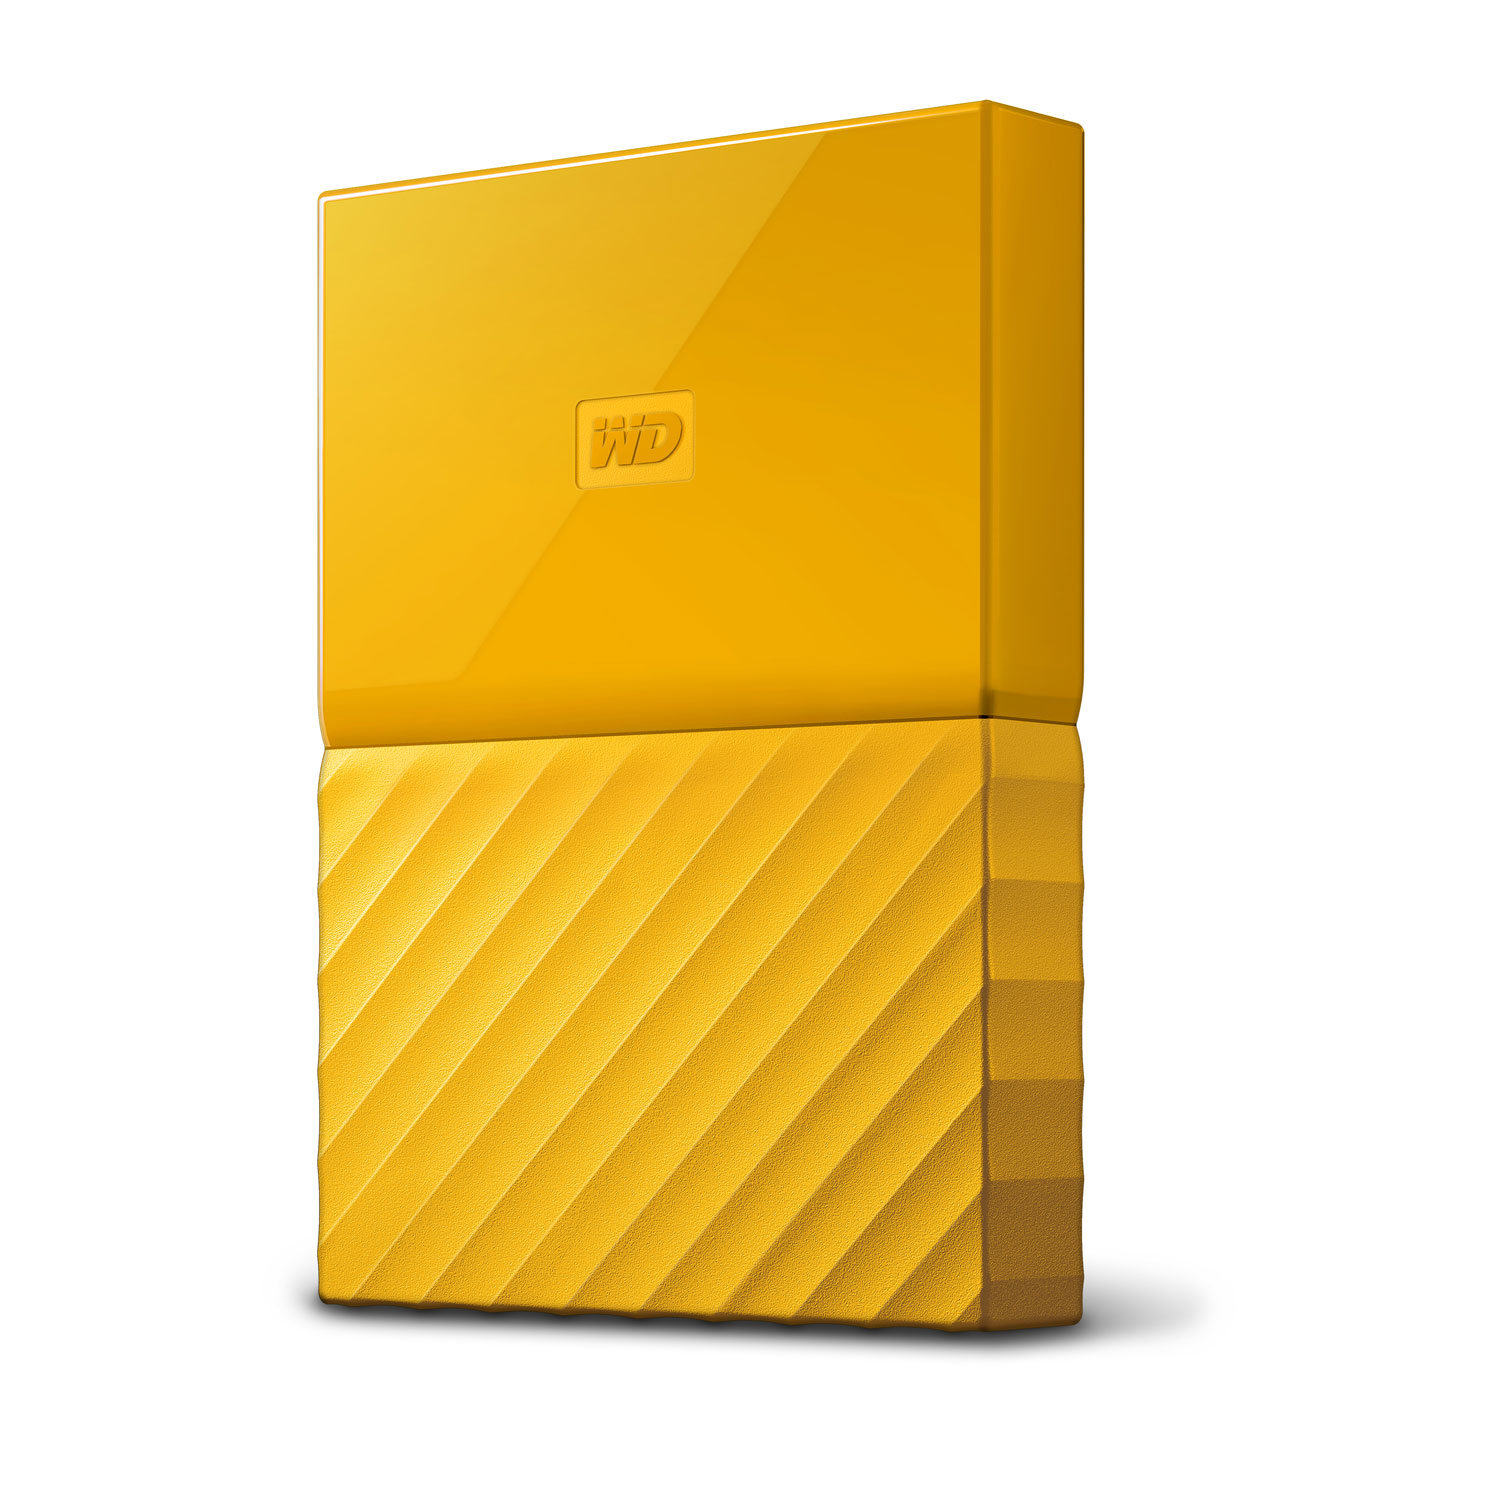 wd my passport 1 to jaune usb 3 0 disque dur externe western digital sur ldlc. Black Bedroom Furniture Sets. Home Design Ideas